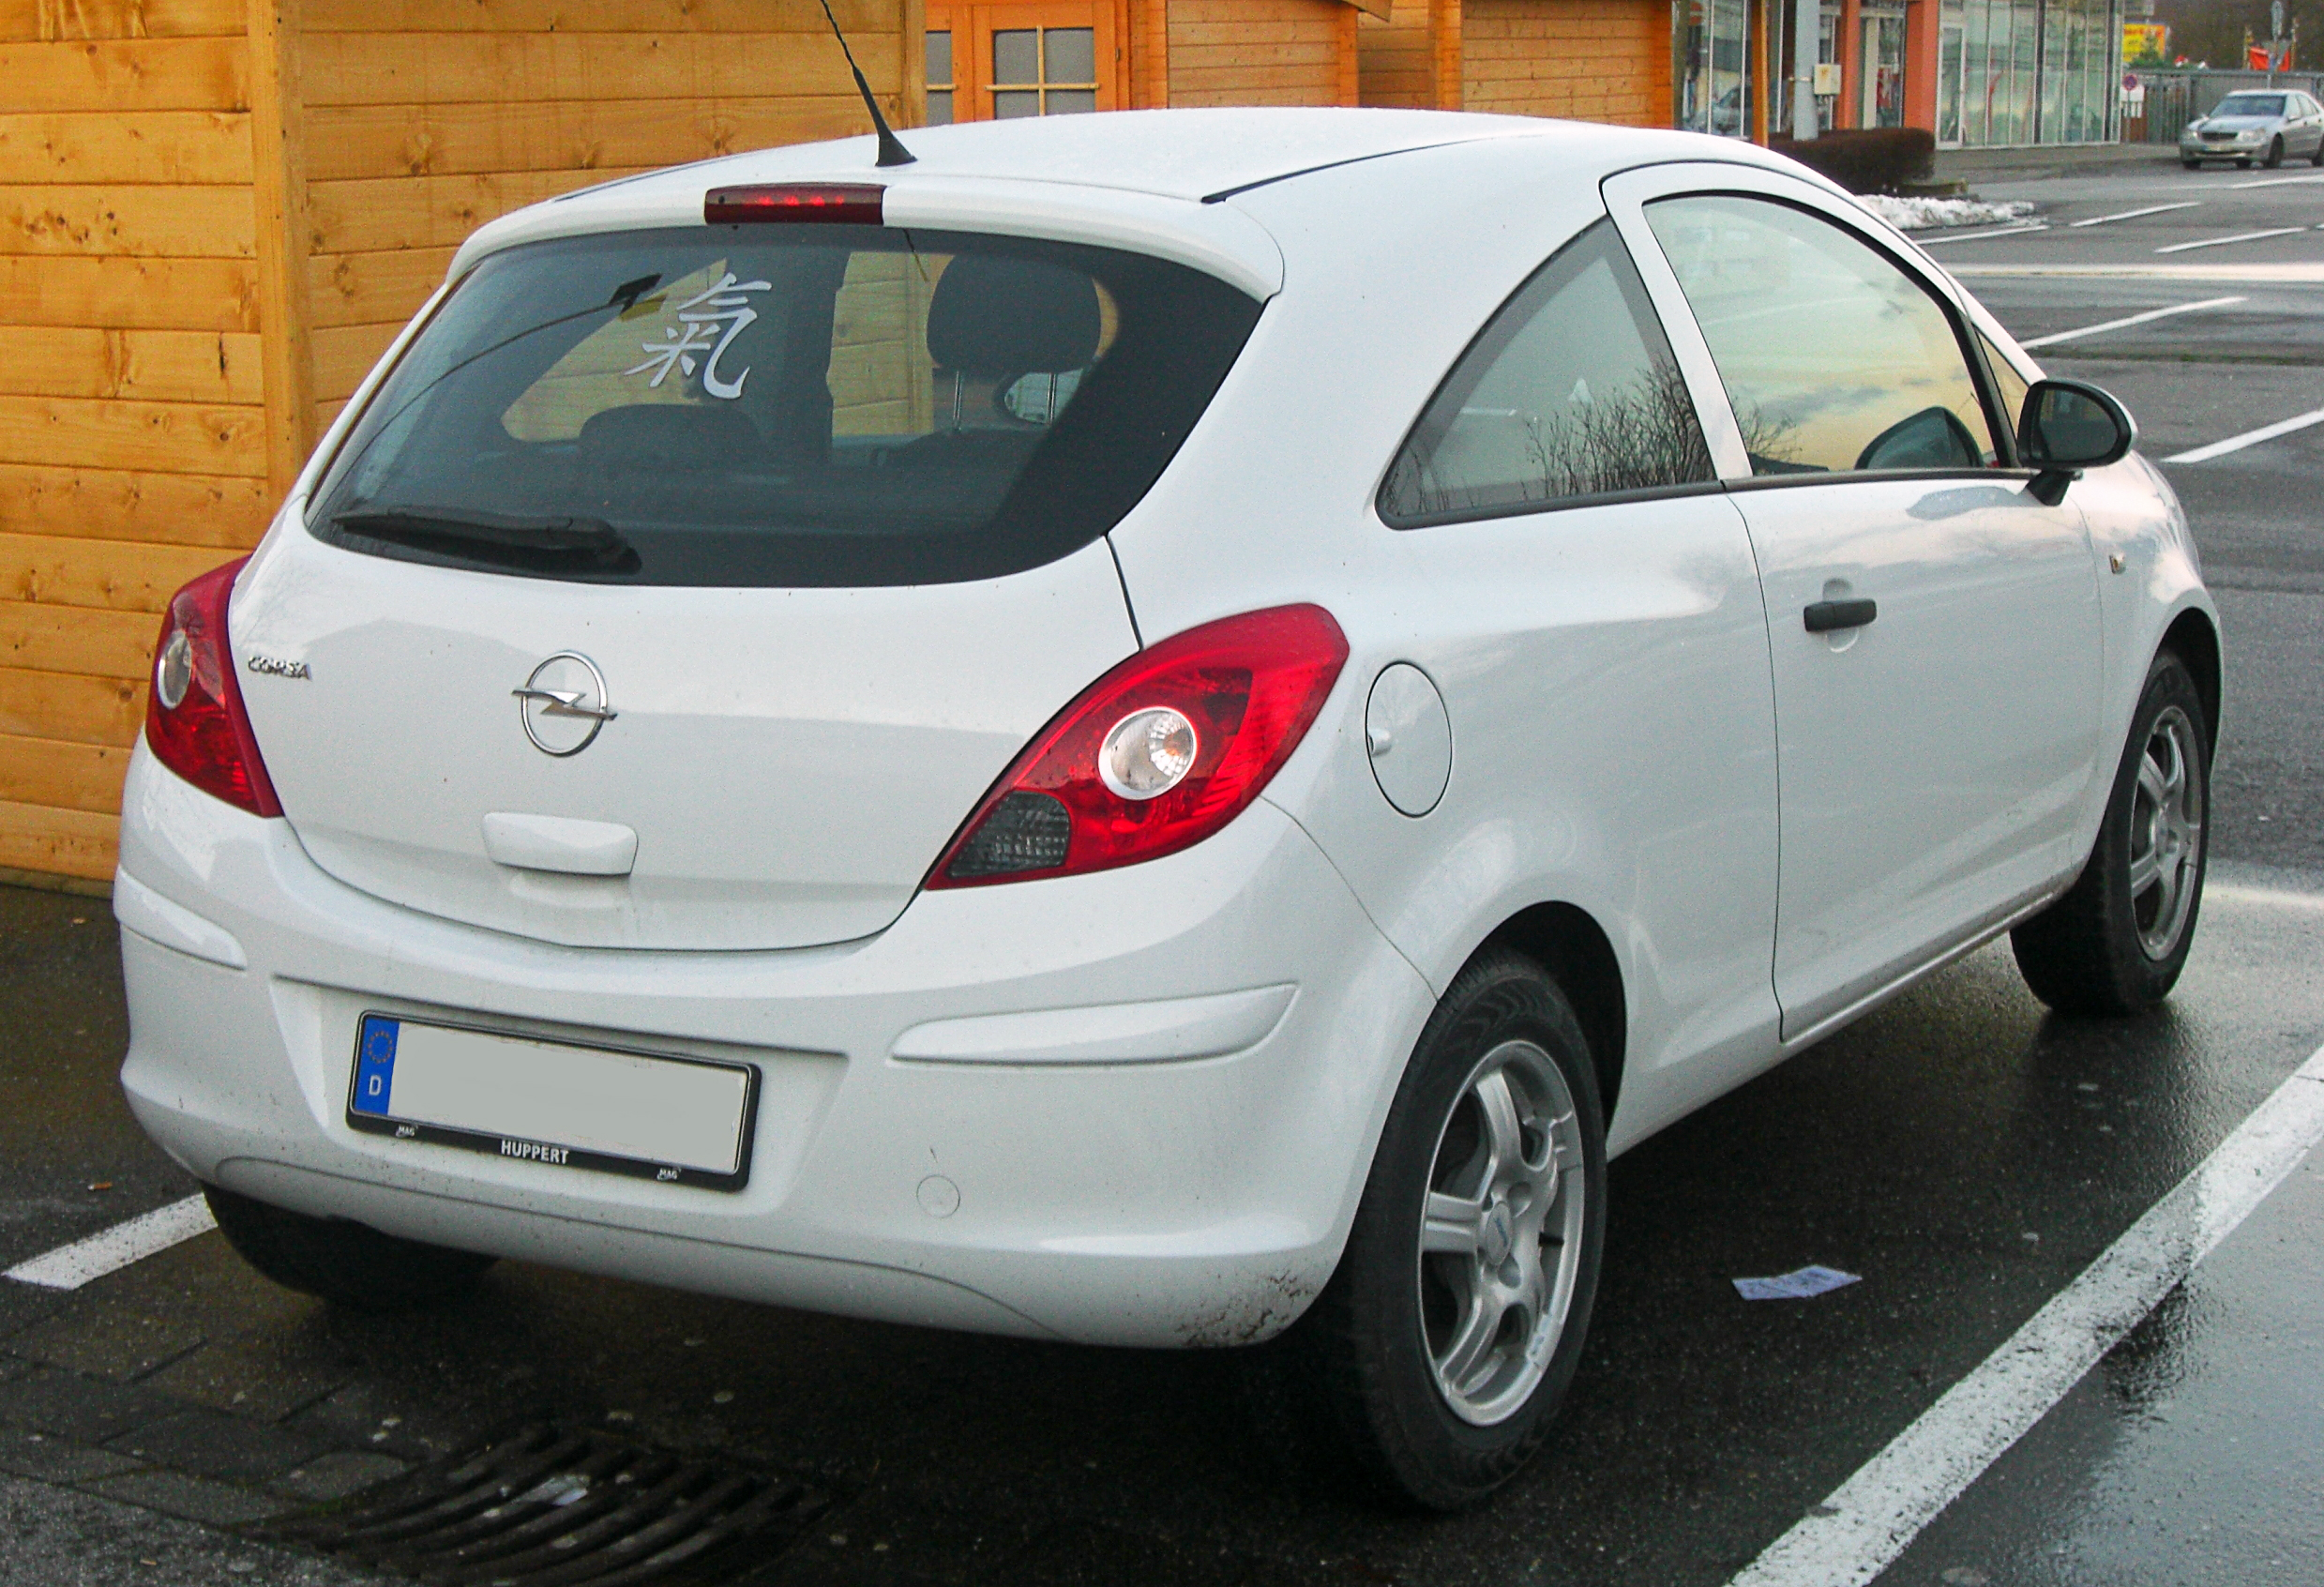 file opel corsa d seit 2006 rear mj jpg wikimedia commons. Black Bedroom Furniture Sets. Home Design Ideas